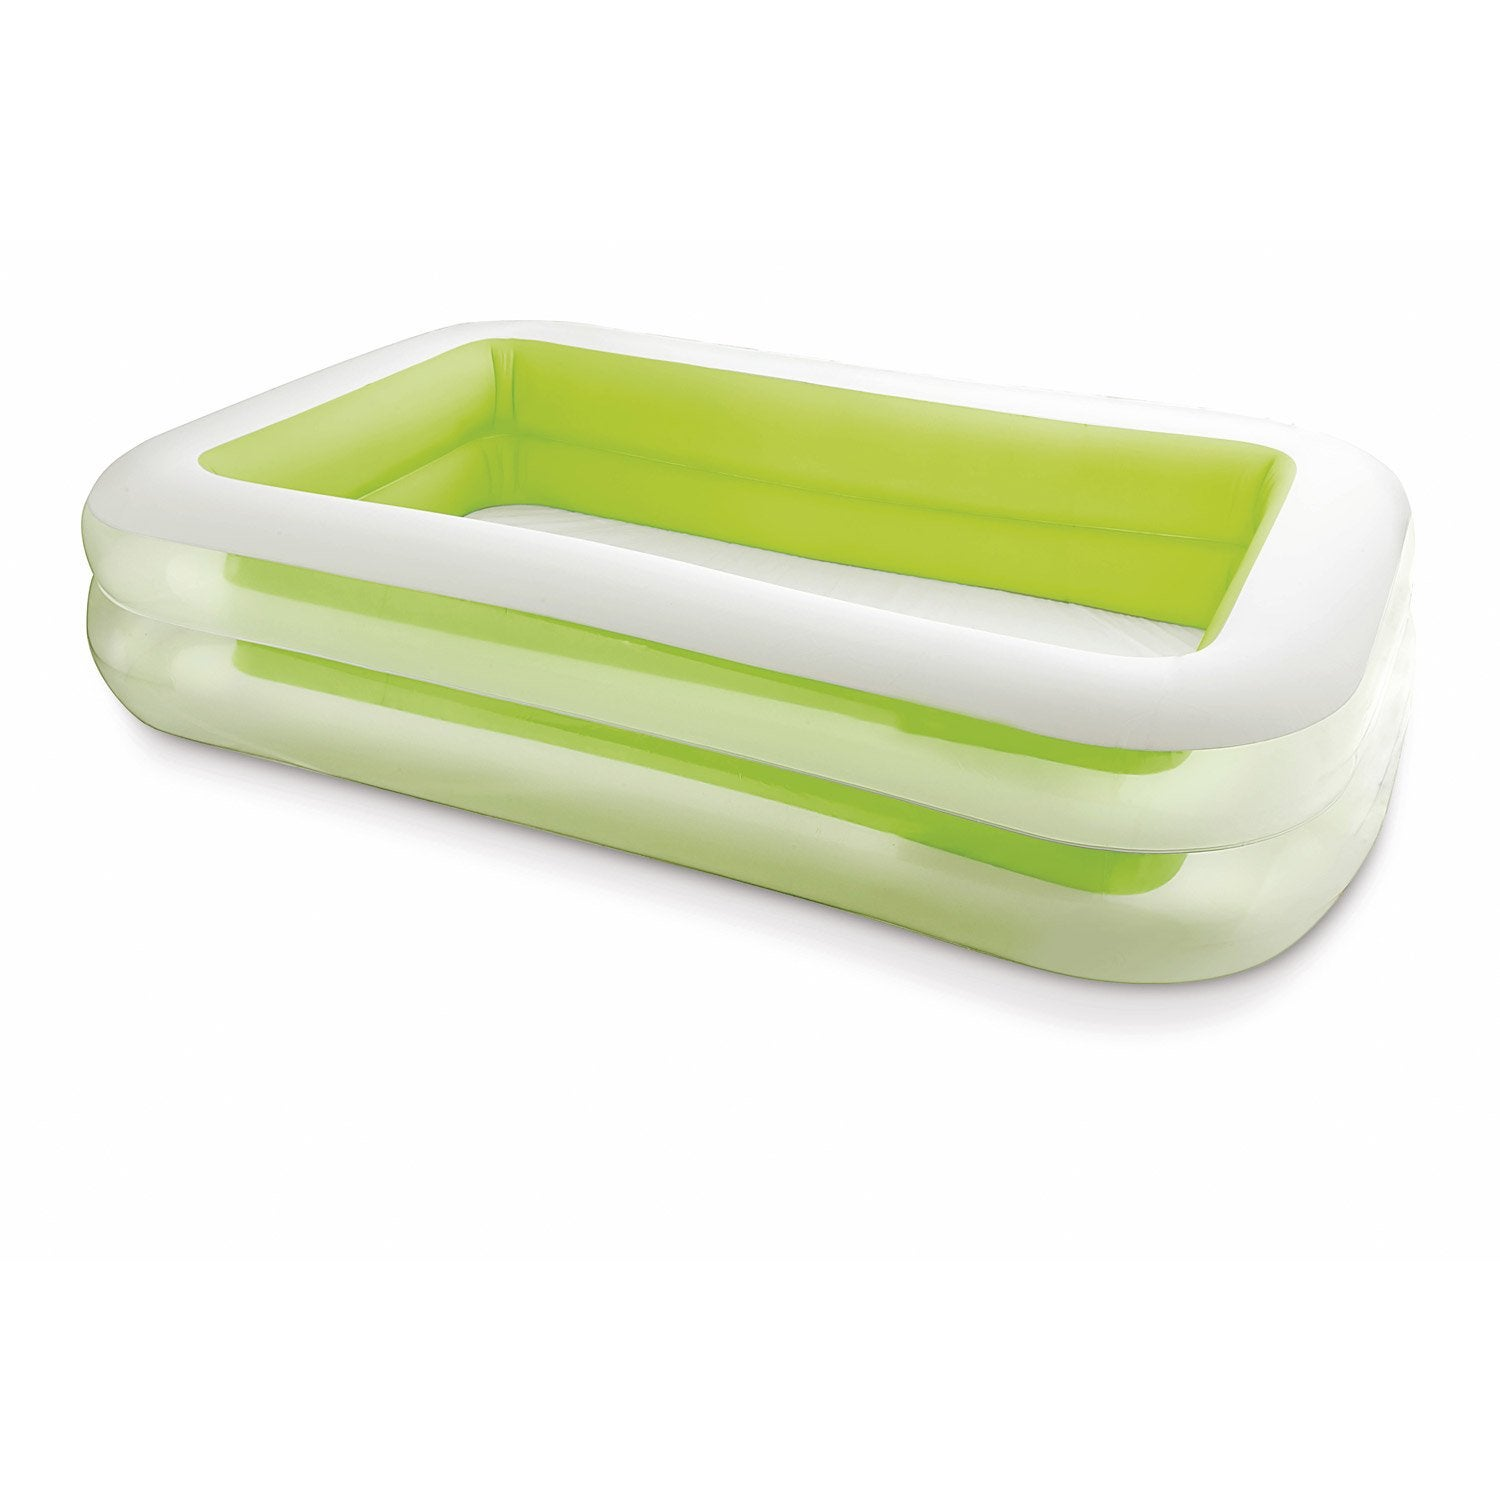 Piscine rectangulaire gonflable for Achat piscine gonflable